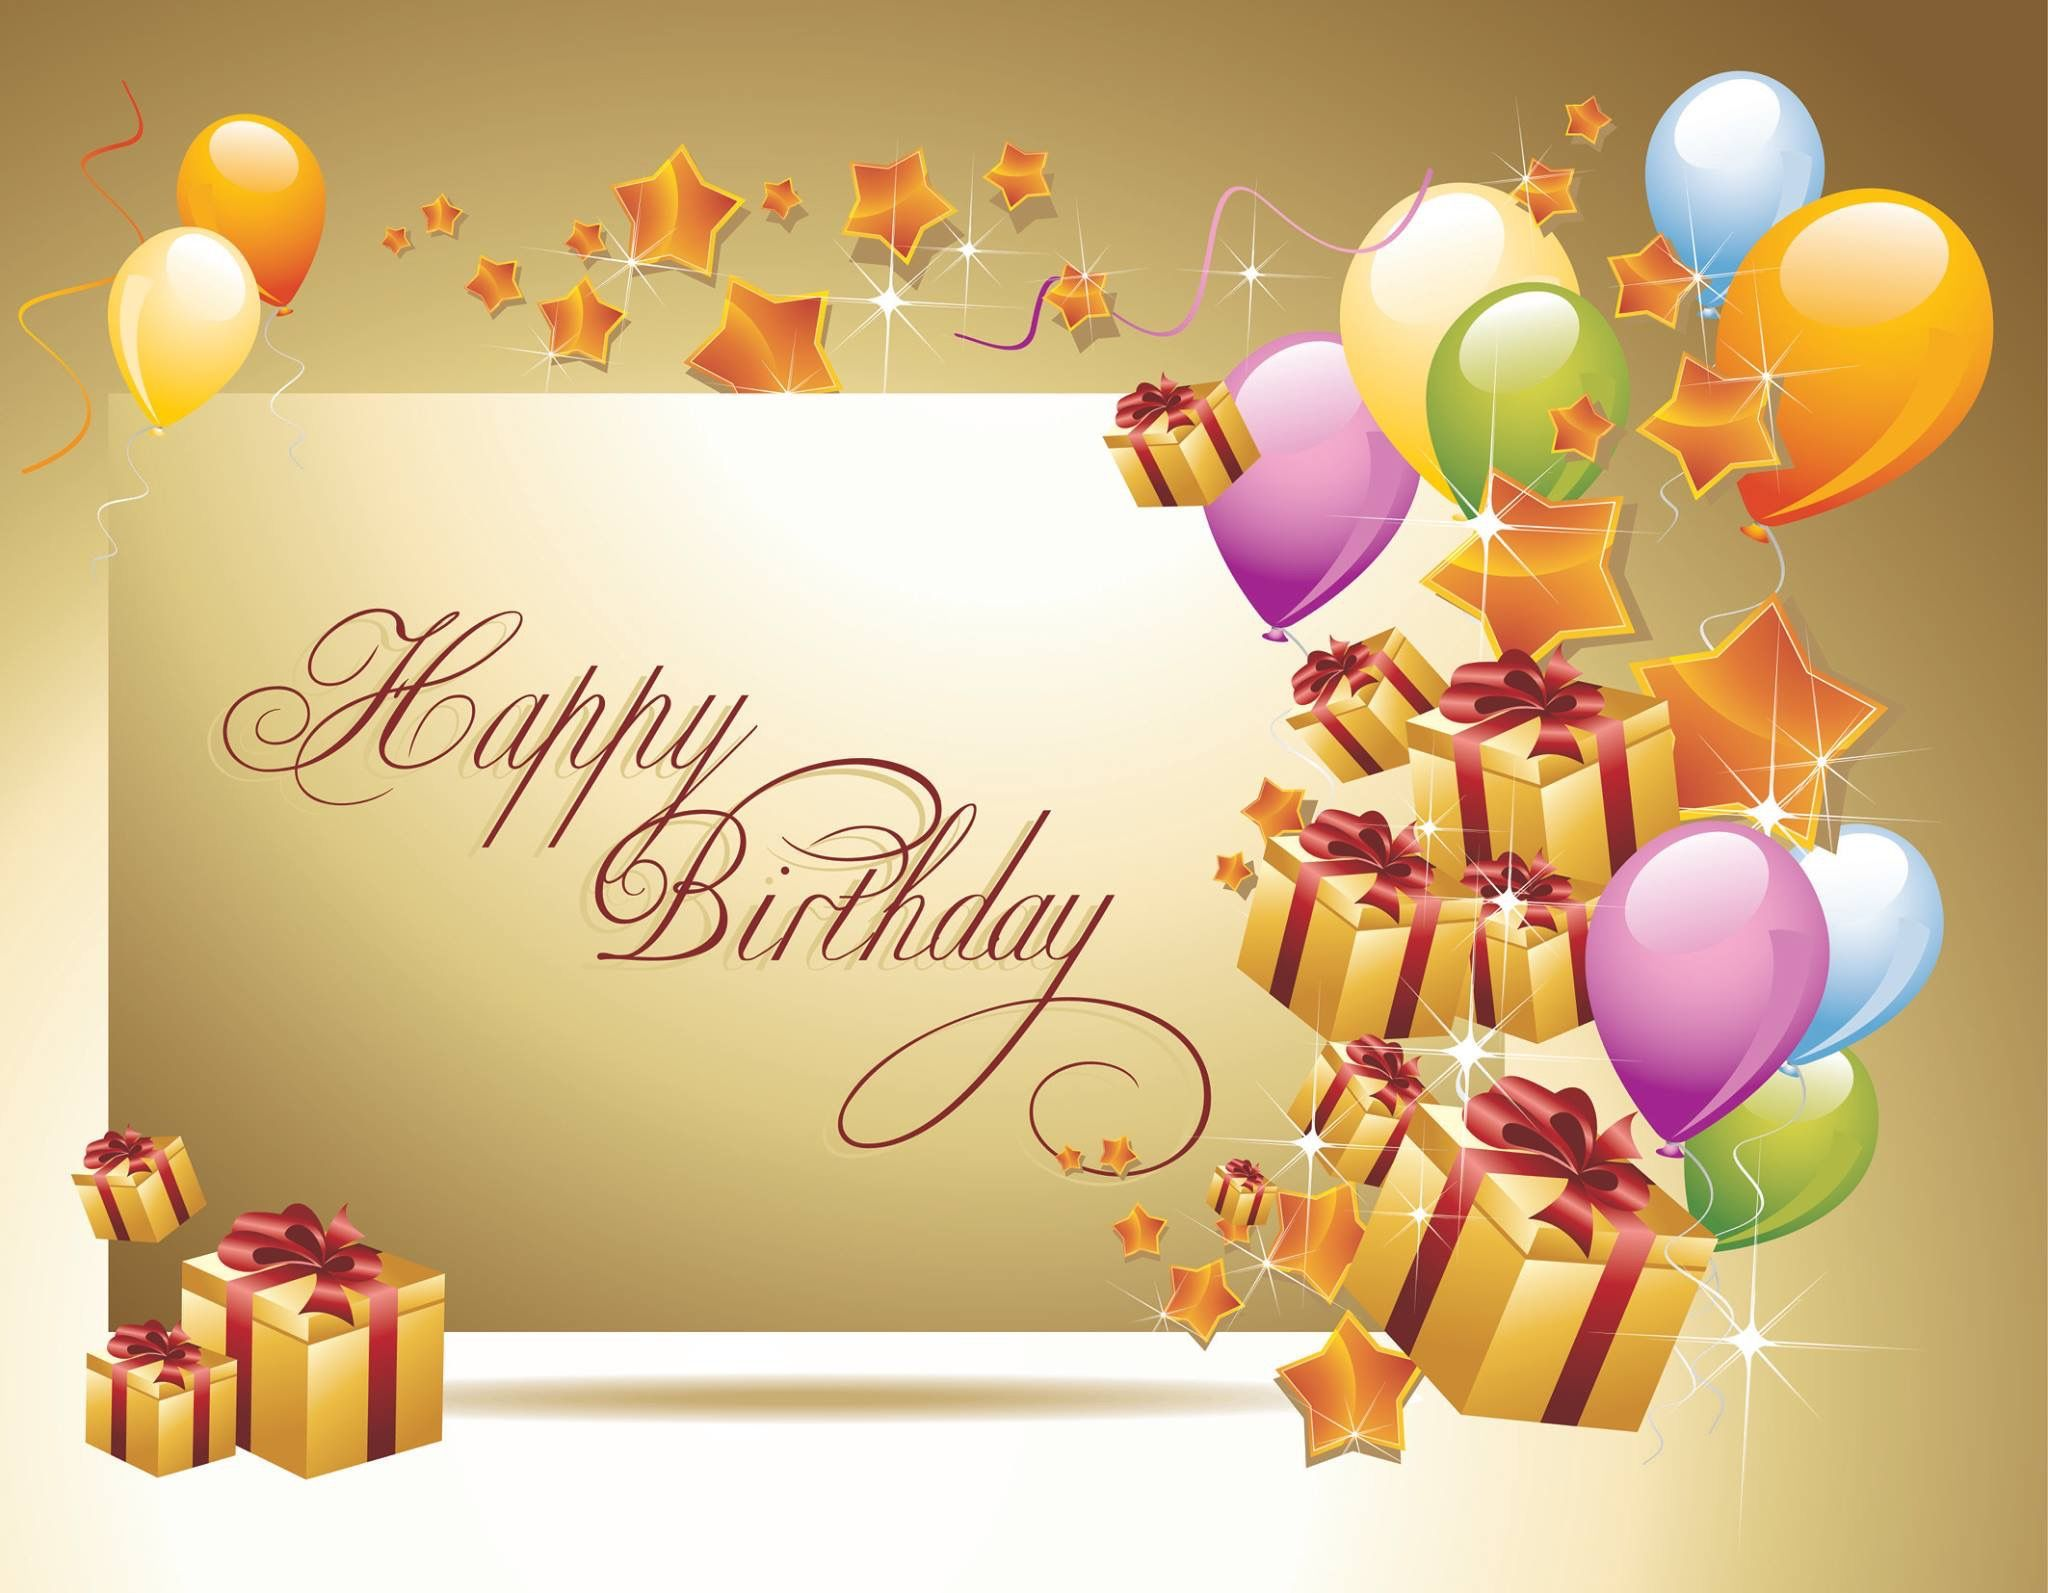 Pin by Diana Santiago on BIRTHDAY WISHES Pinterest